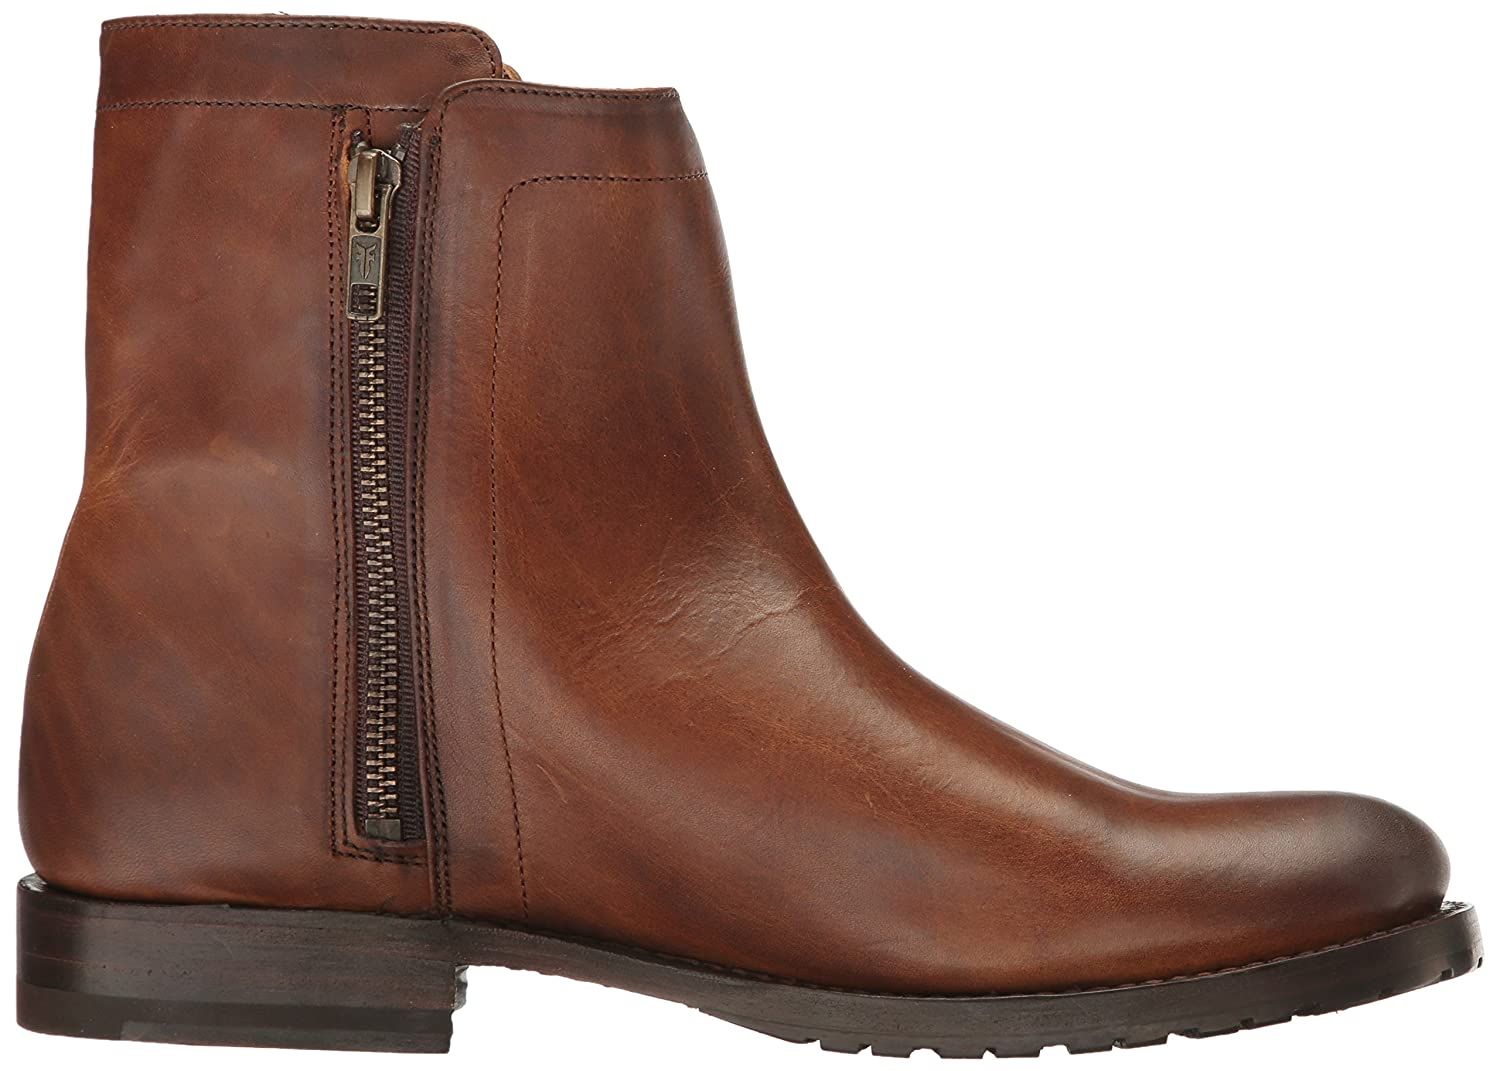 FRYE Women's Natalie Double Zip Boot Pressed B01MT5IP66 11 B(M) US|Whiskey Pressed Boot Full Grain 428efa